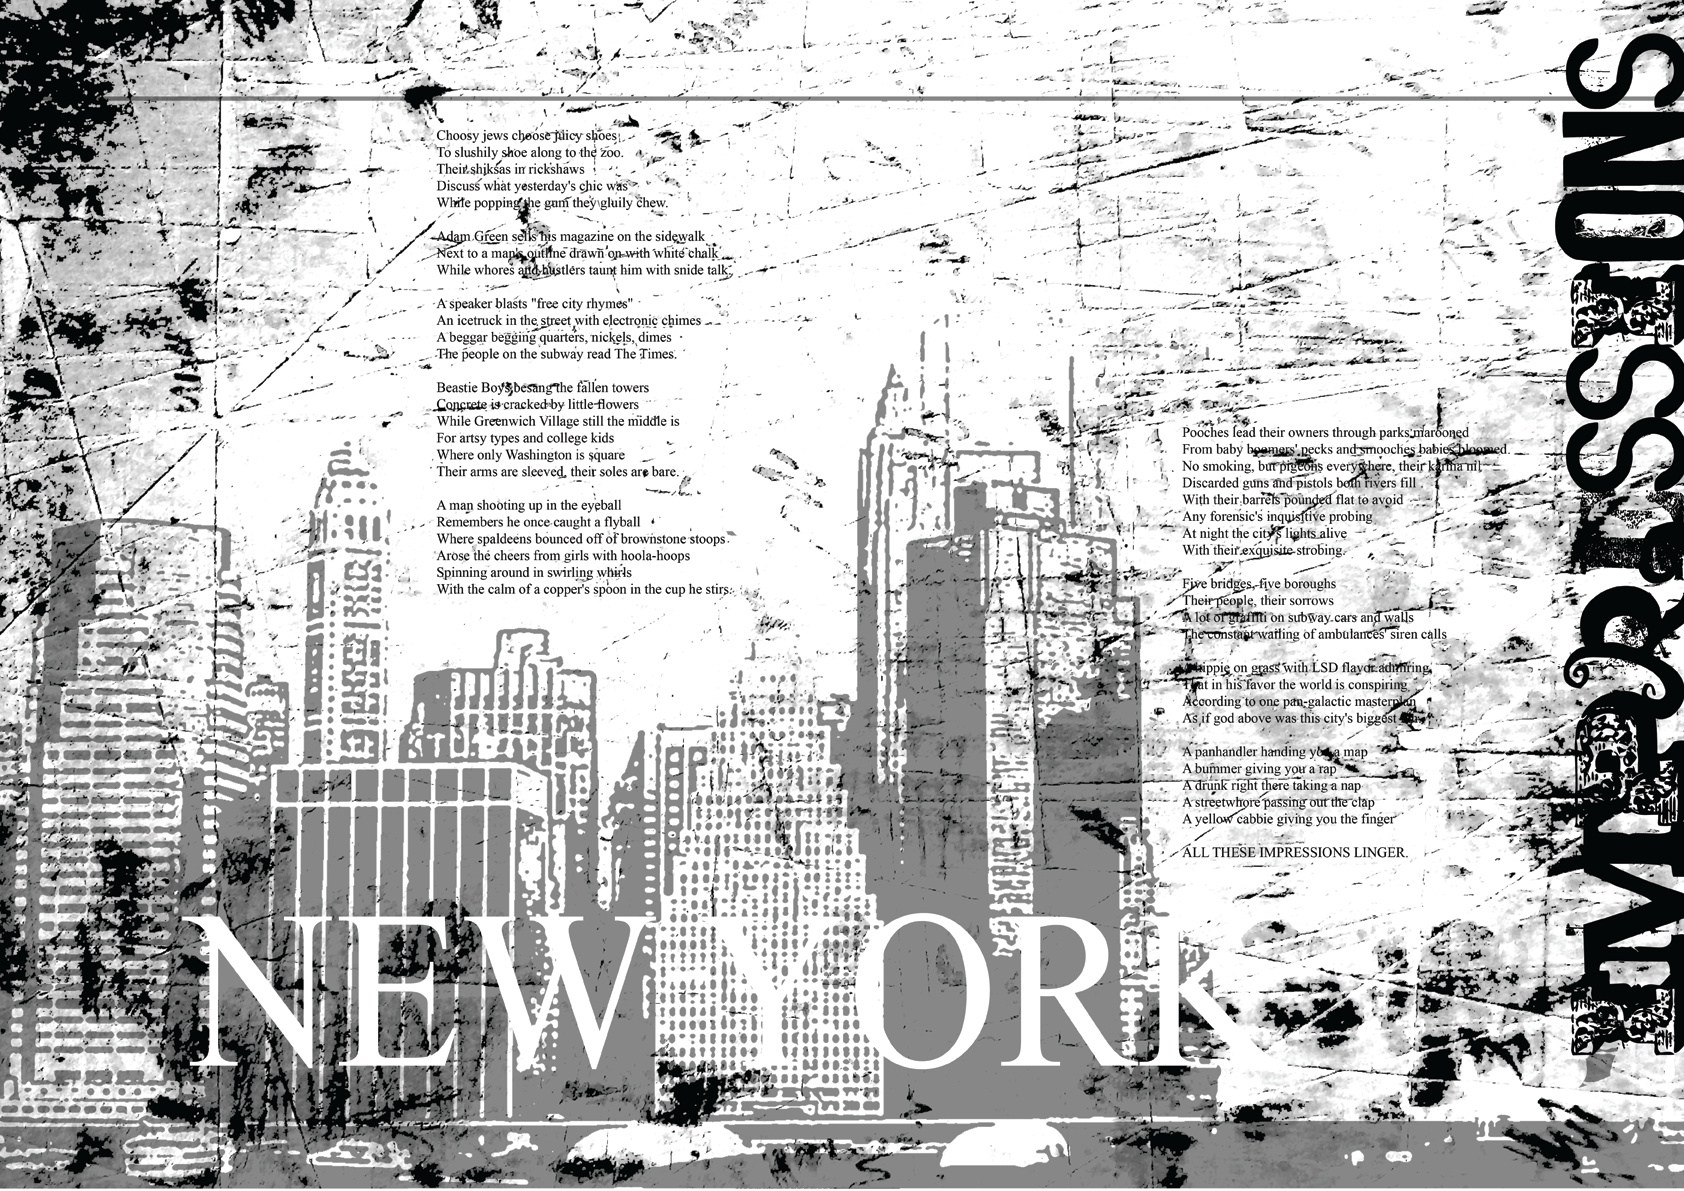 NYC impressions. A poem by Jakob Straub, illustrated by Joel D. Poischen